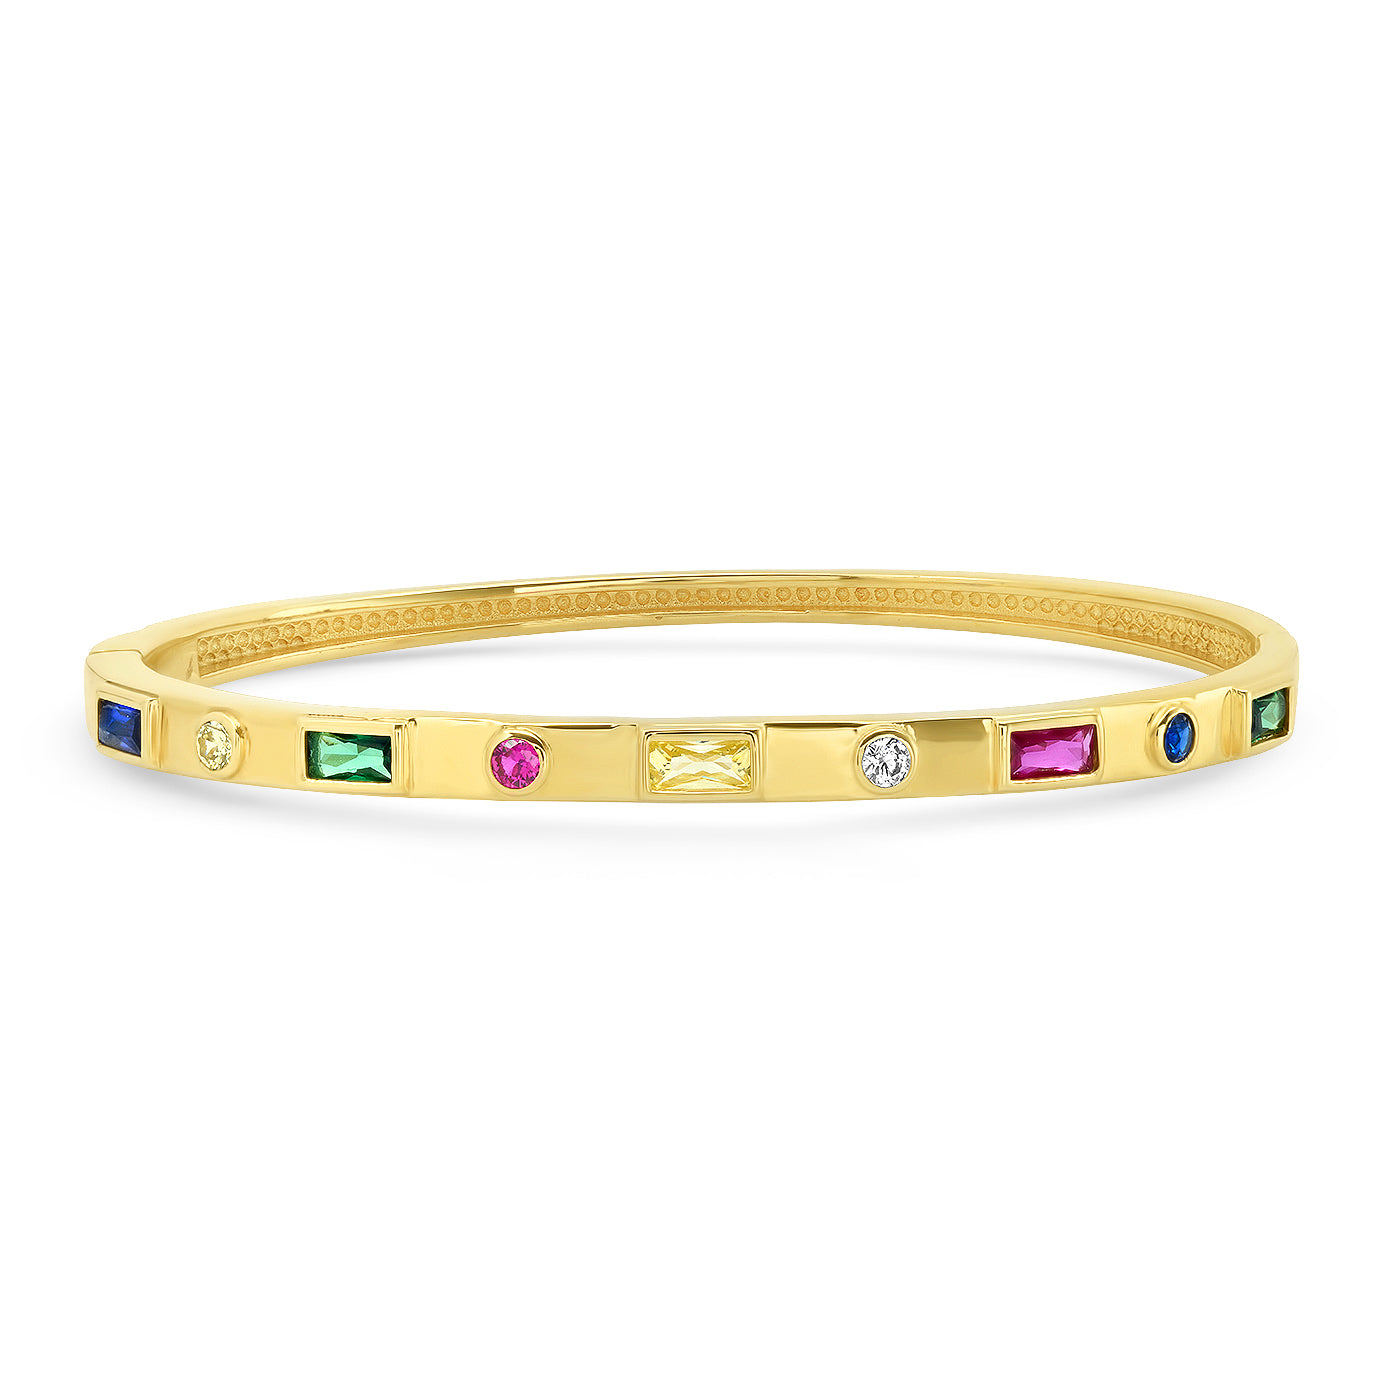 Gold Bangle Bracelet with Multi-Colored Stones